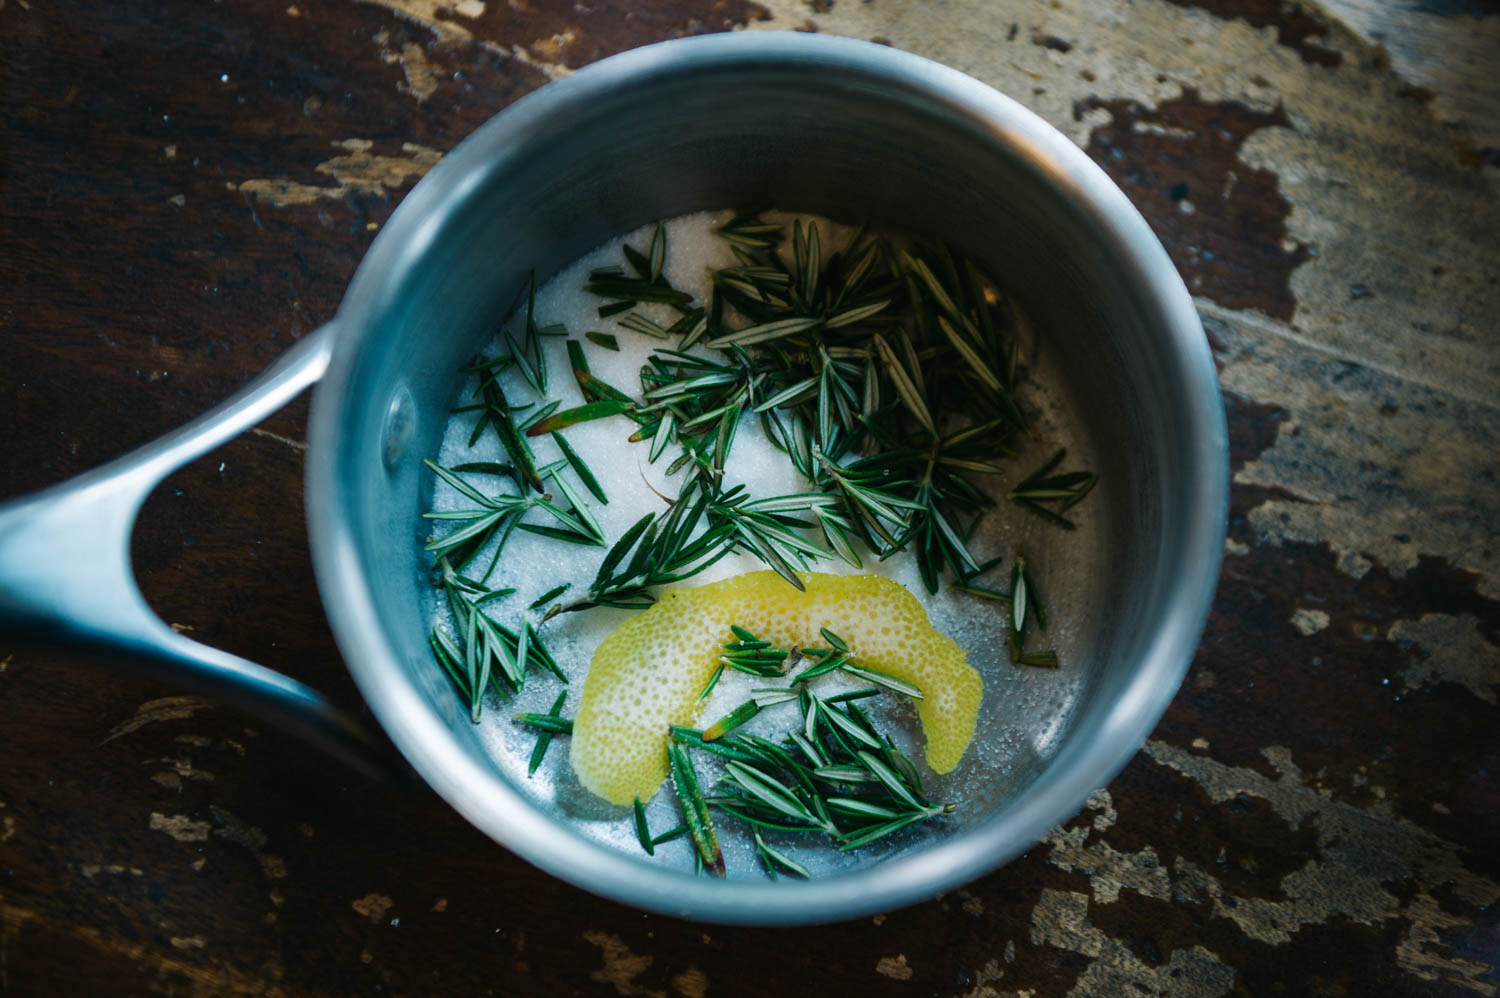 Making rosemary lemon syrup for our cocktails